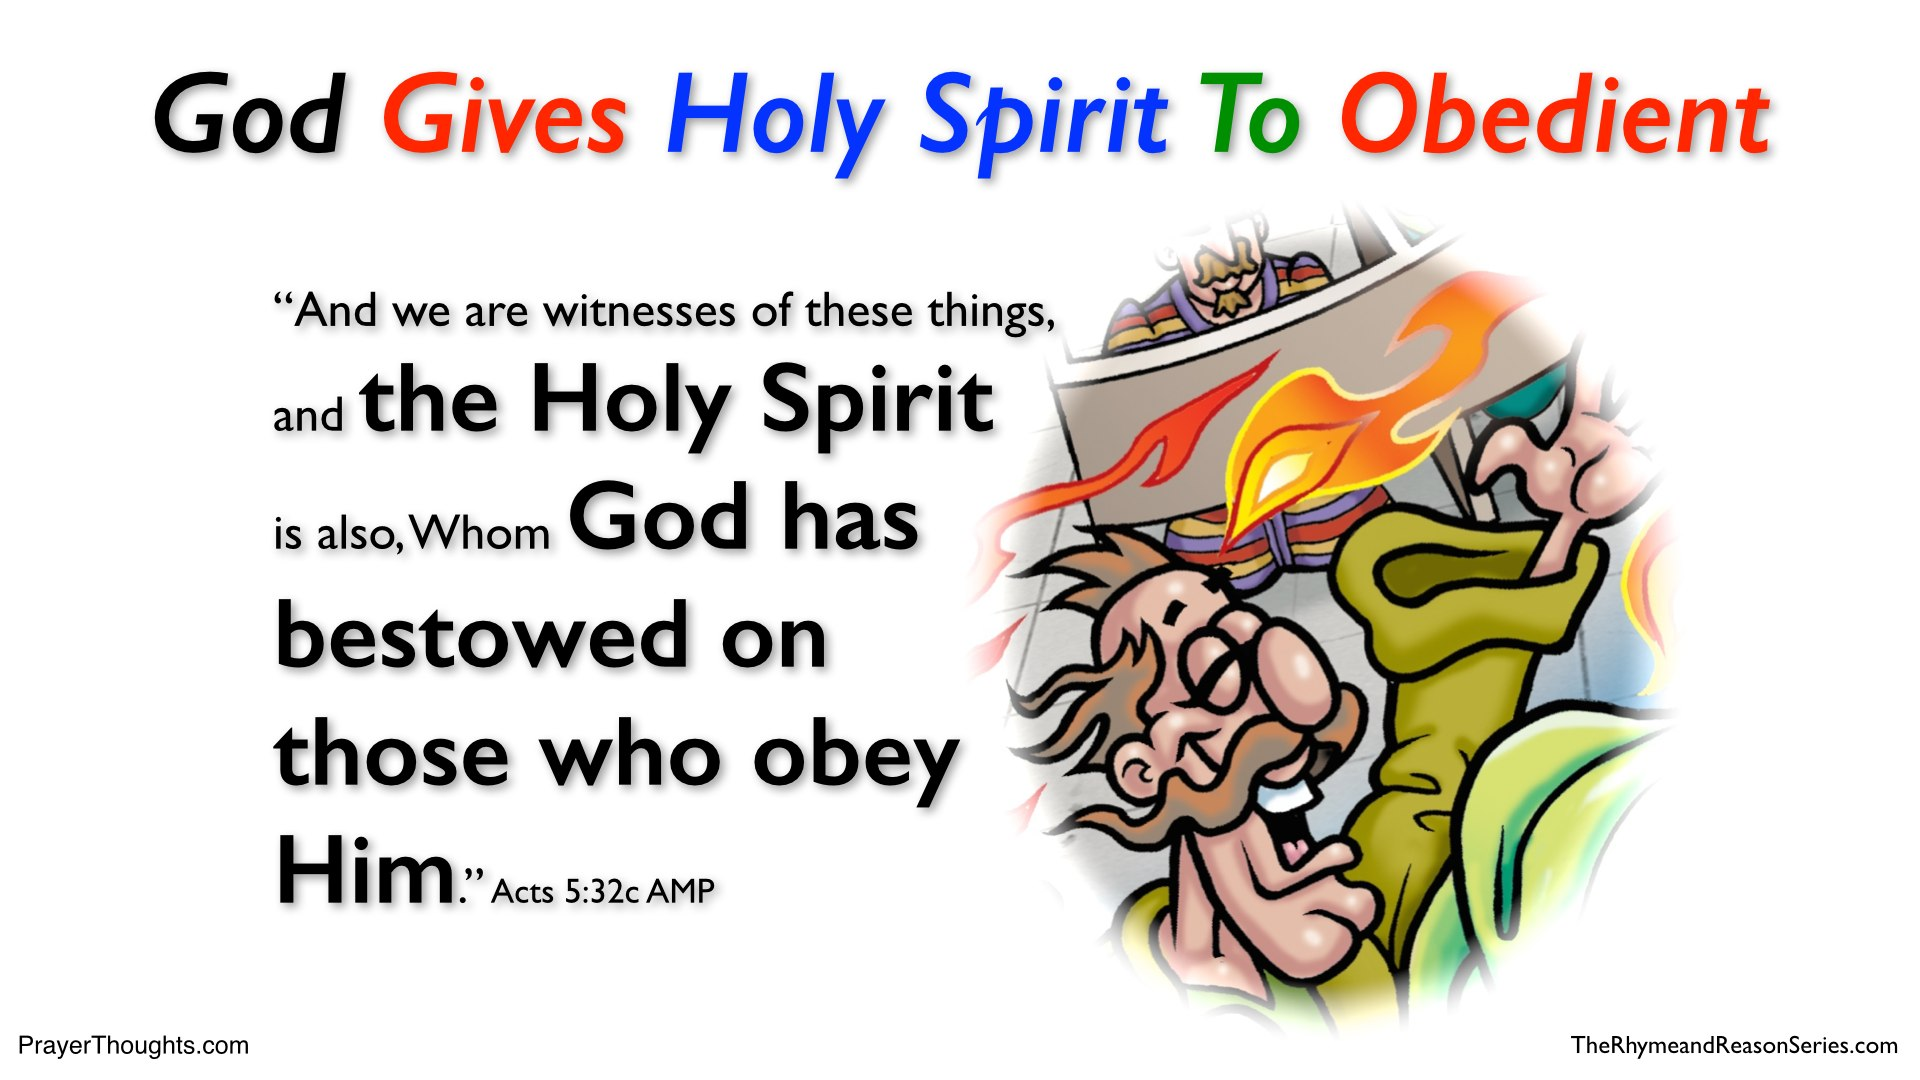 THE HOLY SPIRIT GIVEN TO THOSE WHO OBEY GOD